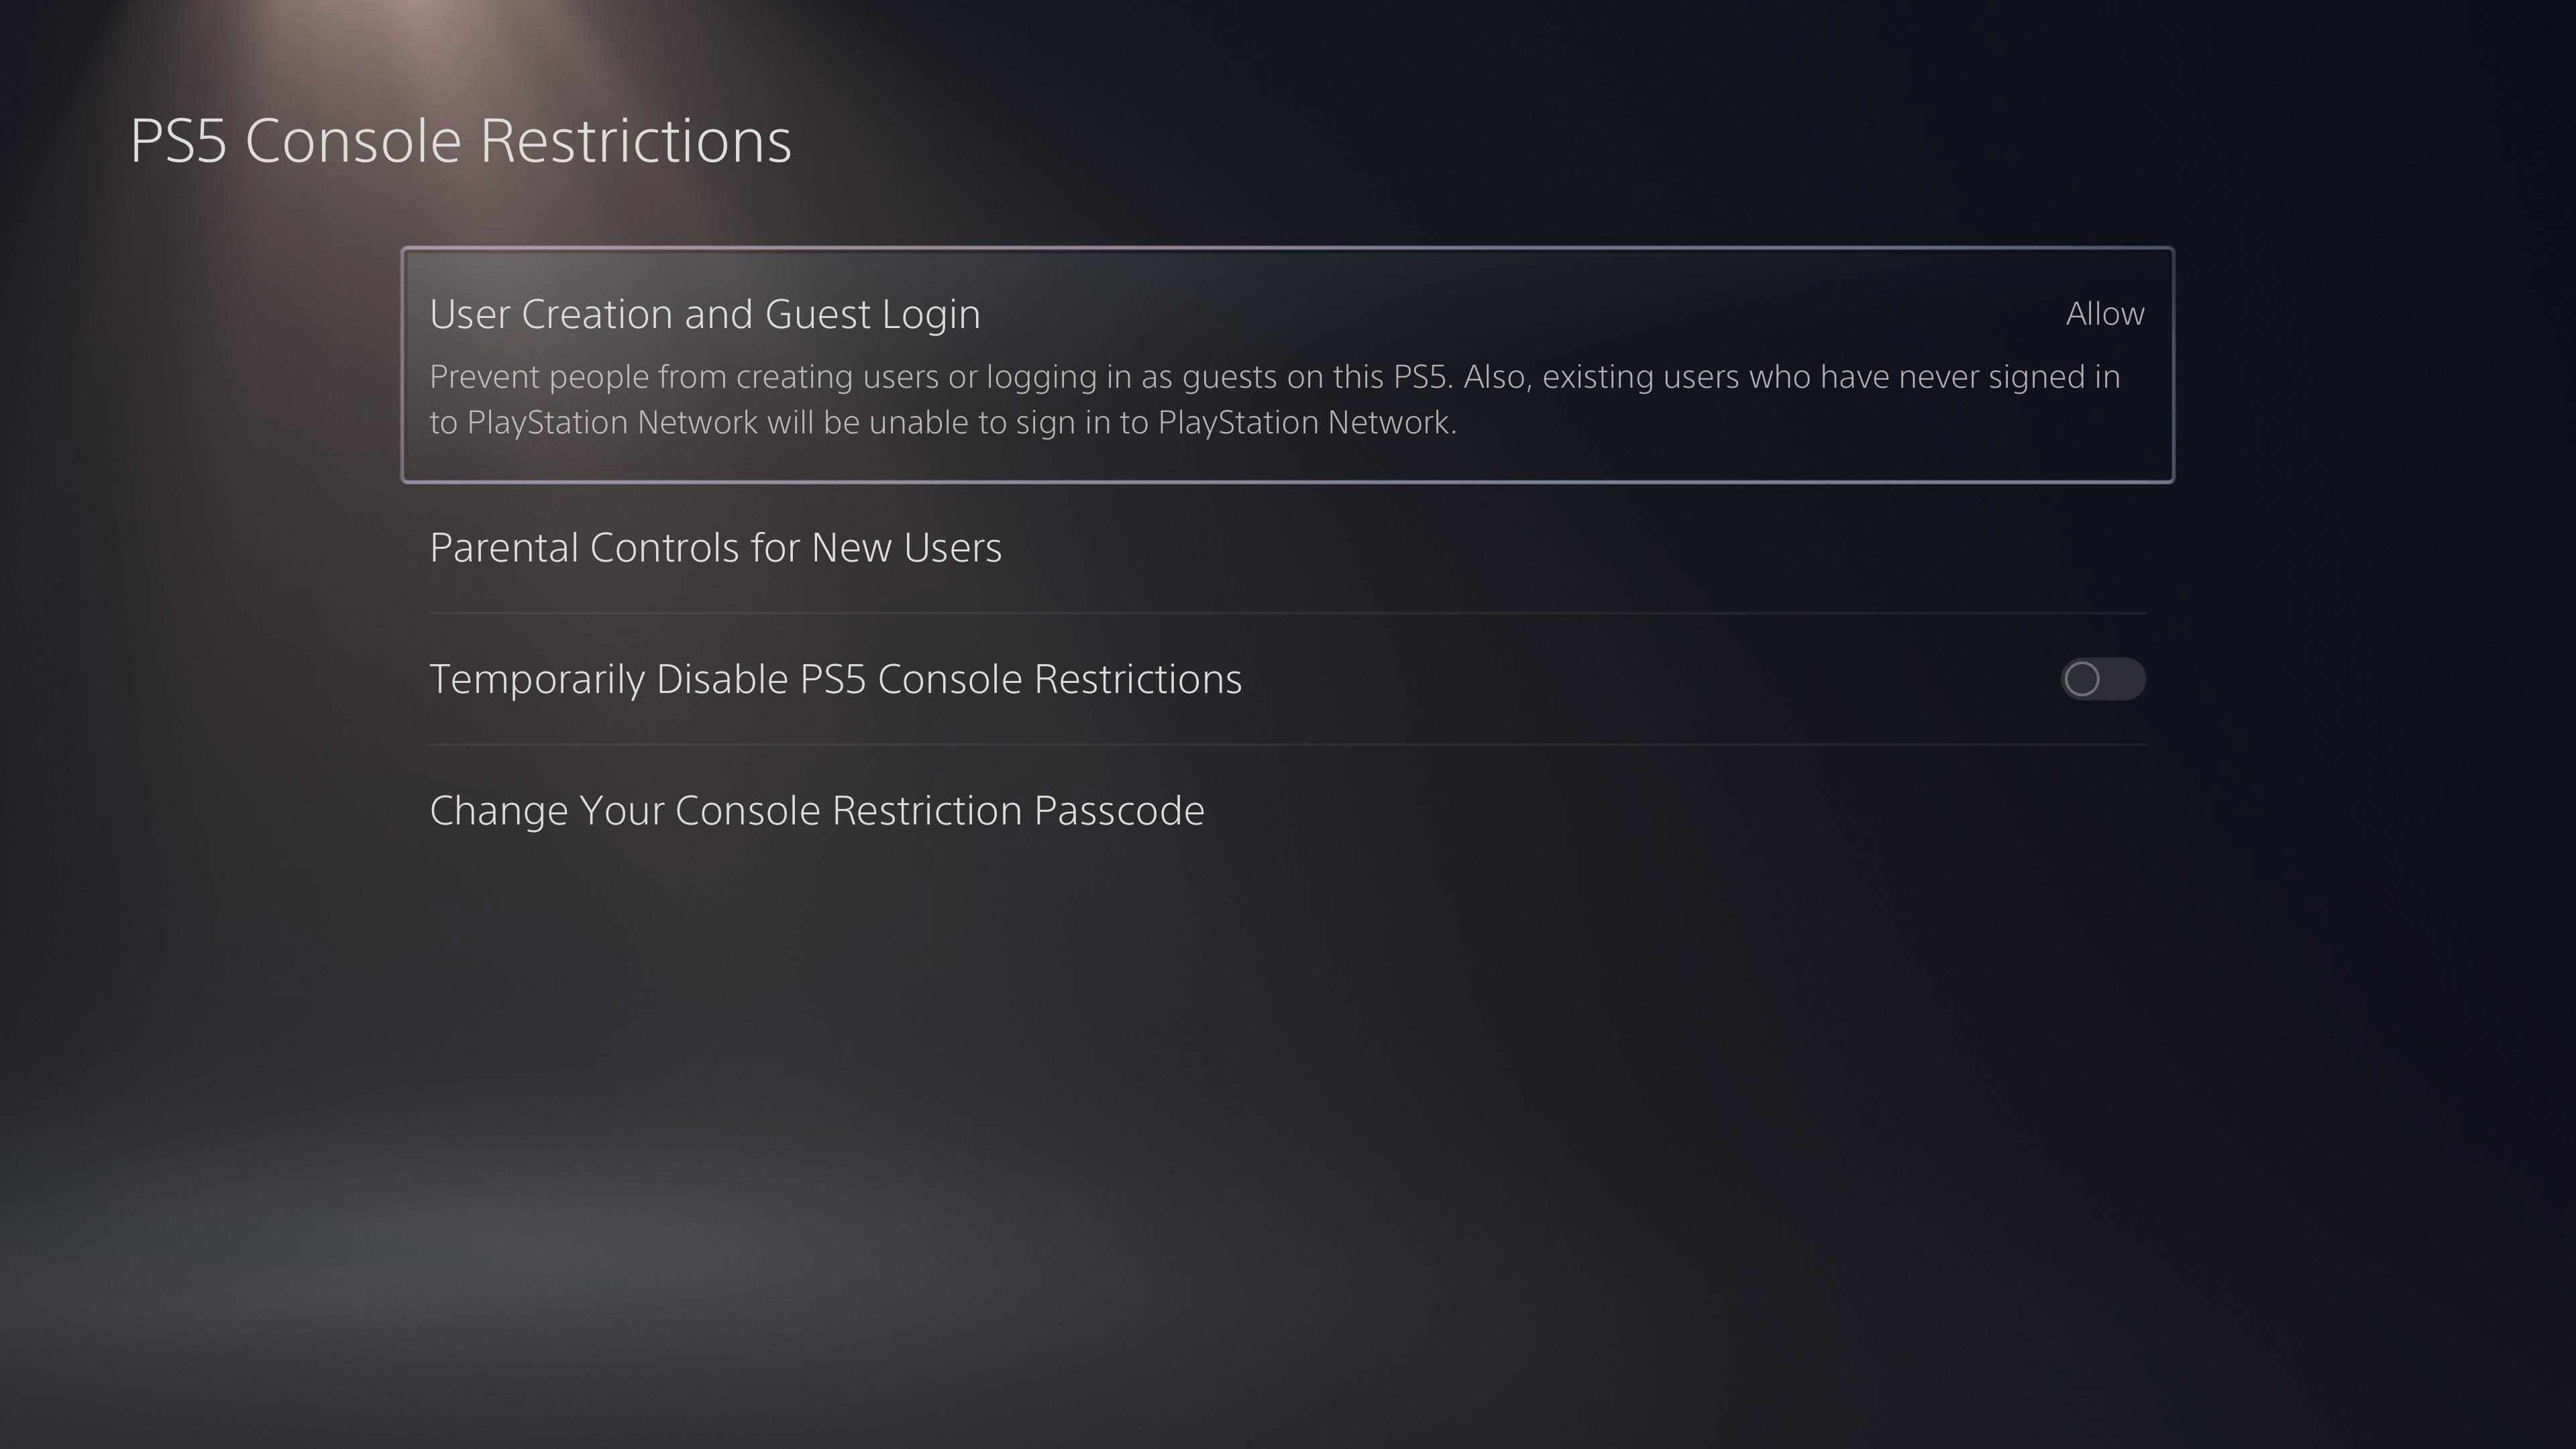 The PS5 Console Restrictions screen